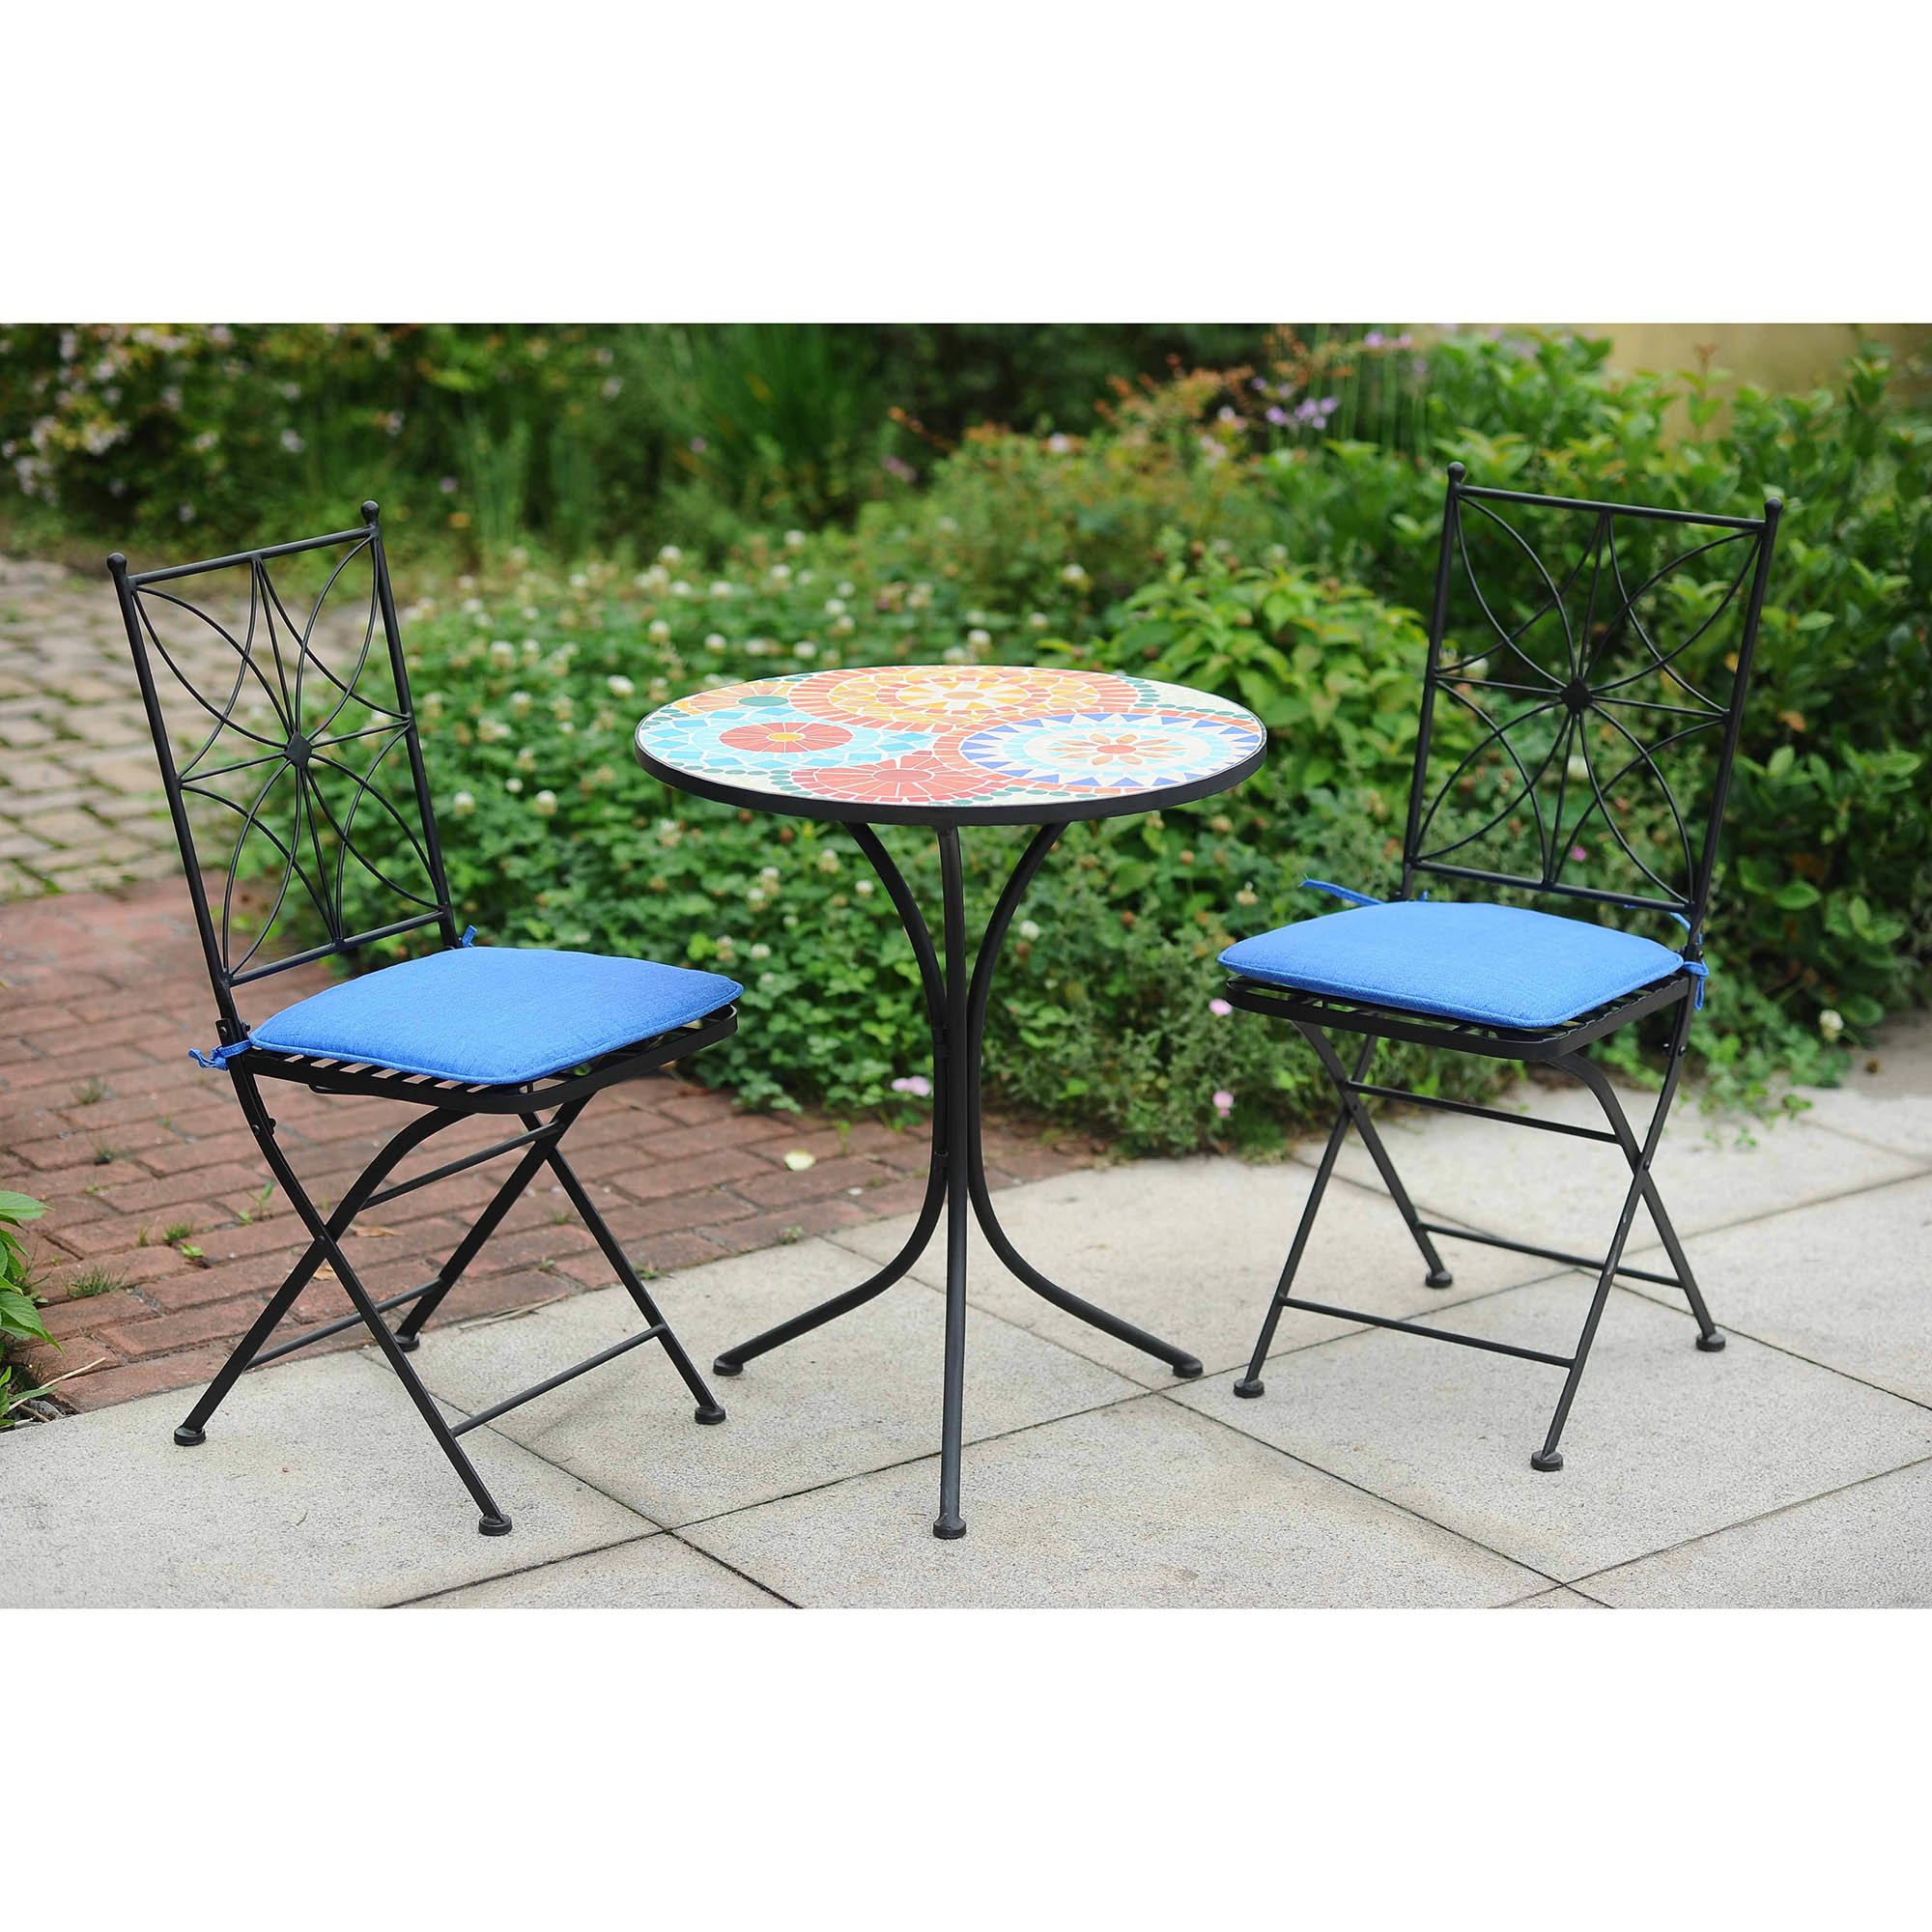 whitman mosaic 3 piece bistro set with cushions OGWUCFZ